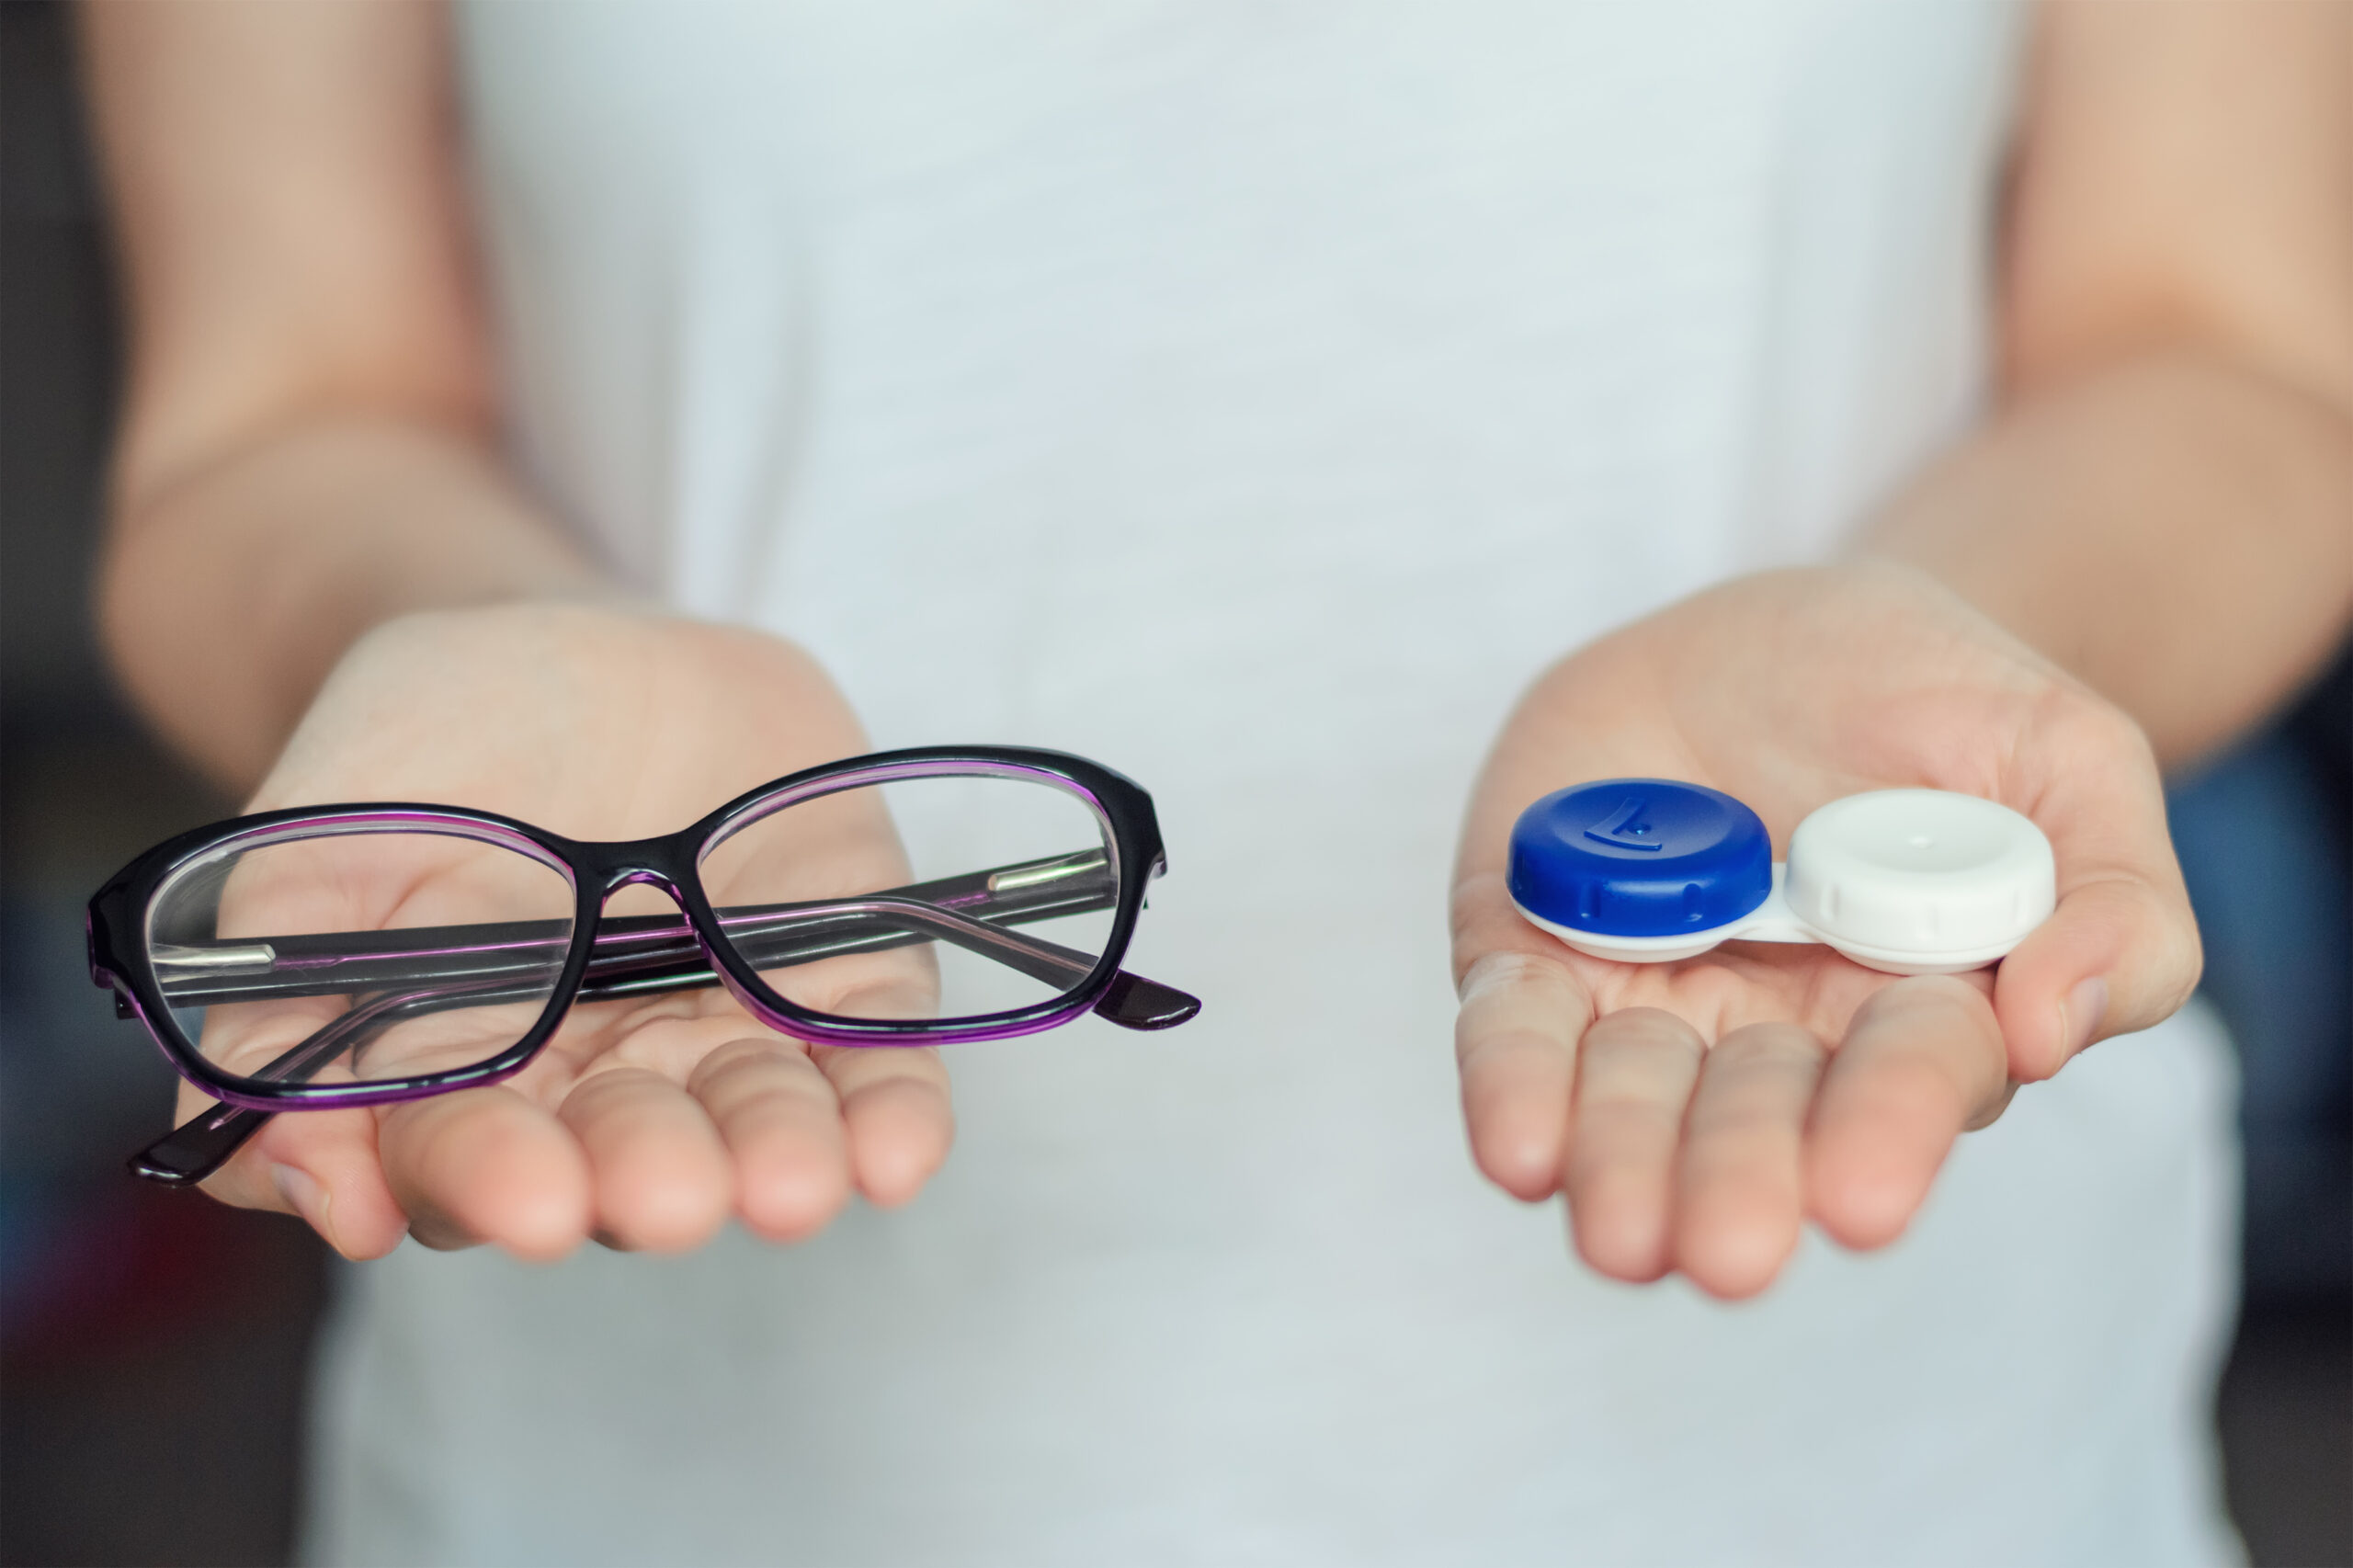 woman hold contact lenses and glasses in hands